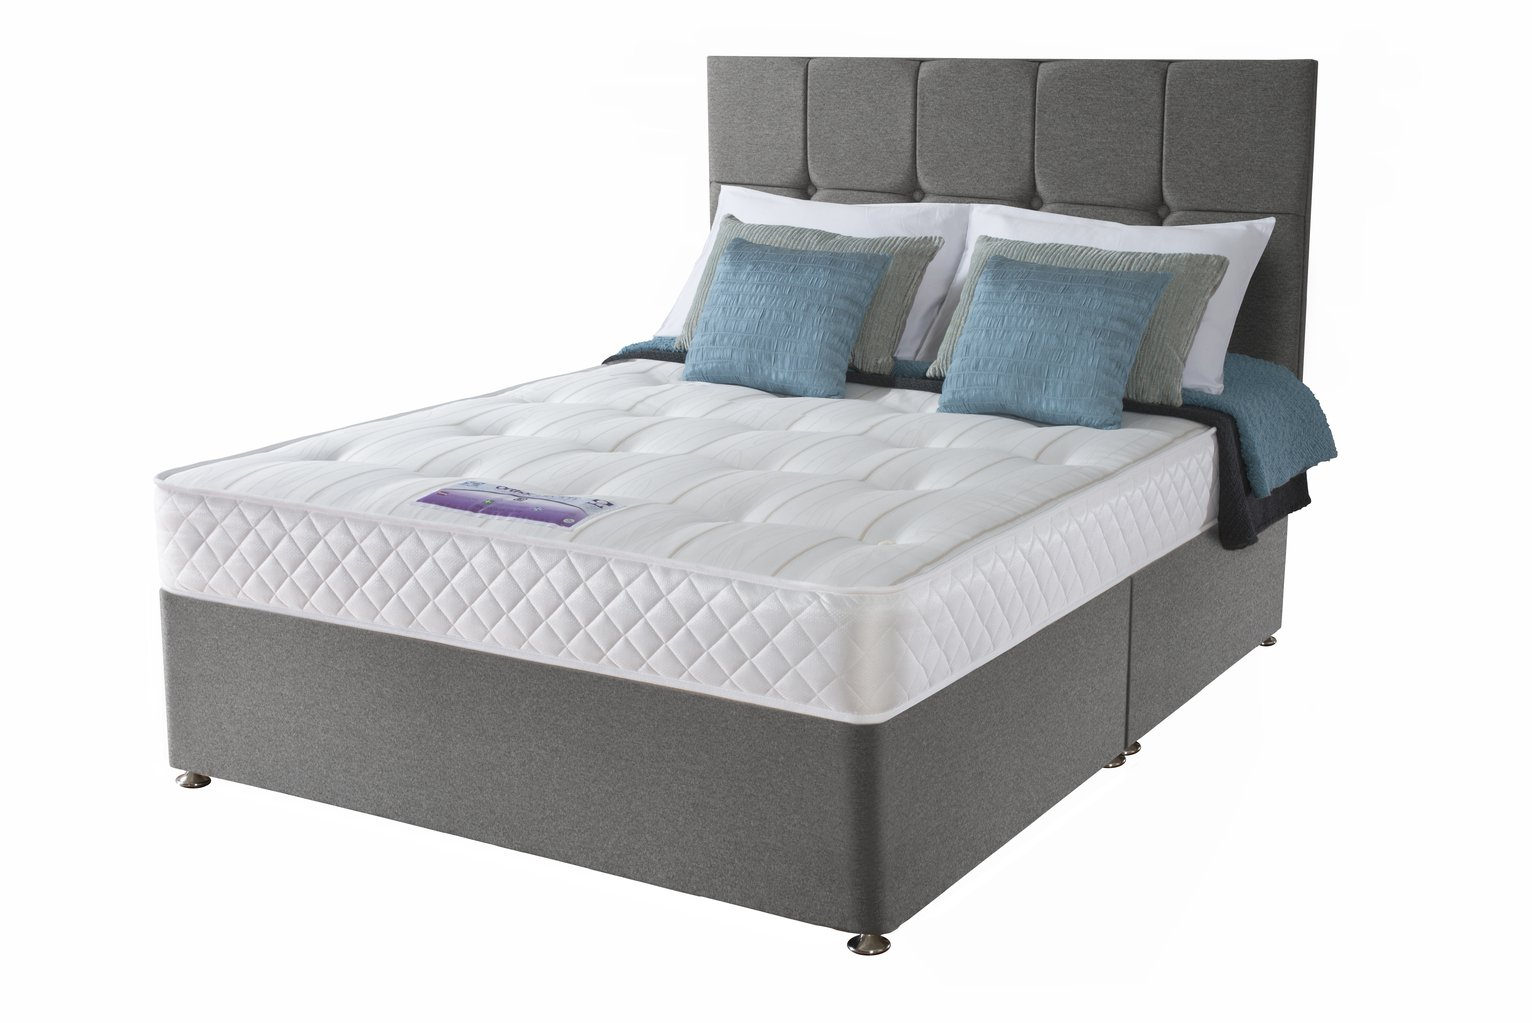 Sealy - Posturepedic Firm Ortho - Superking - Divan Bed at Argos